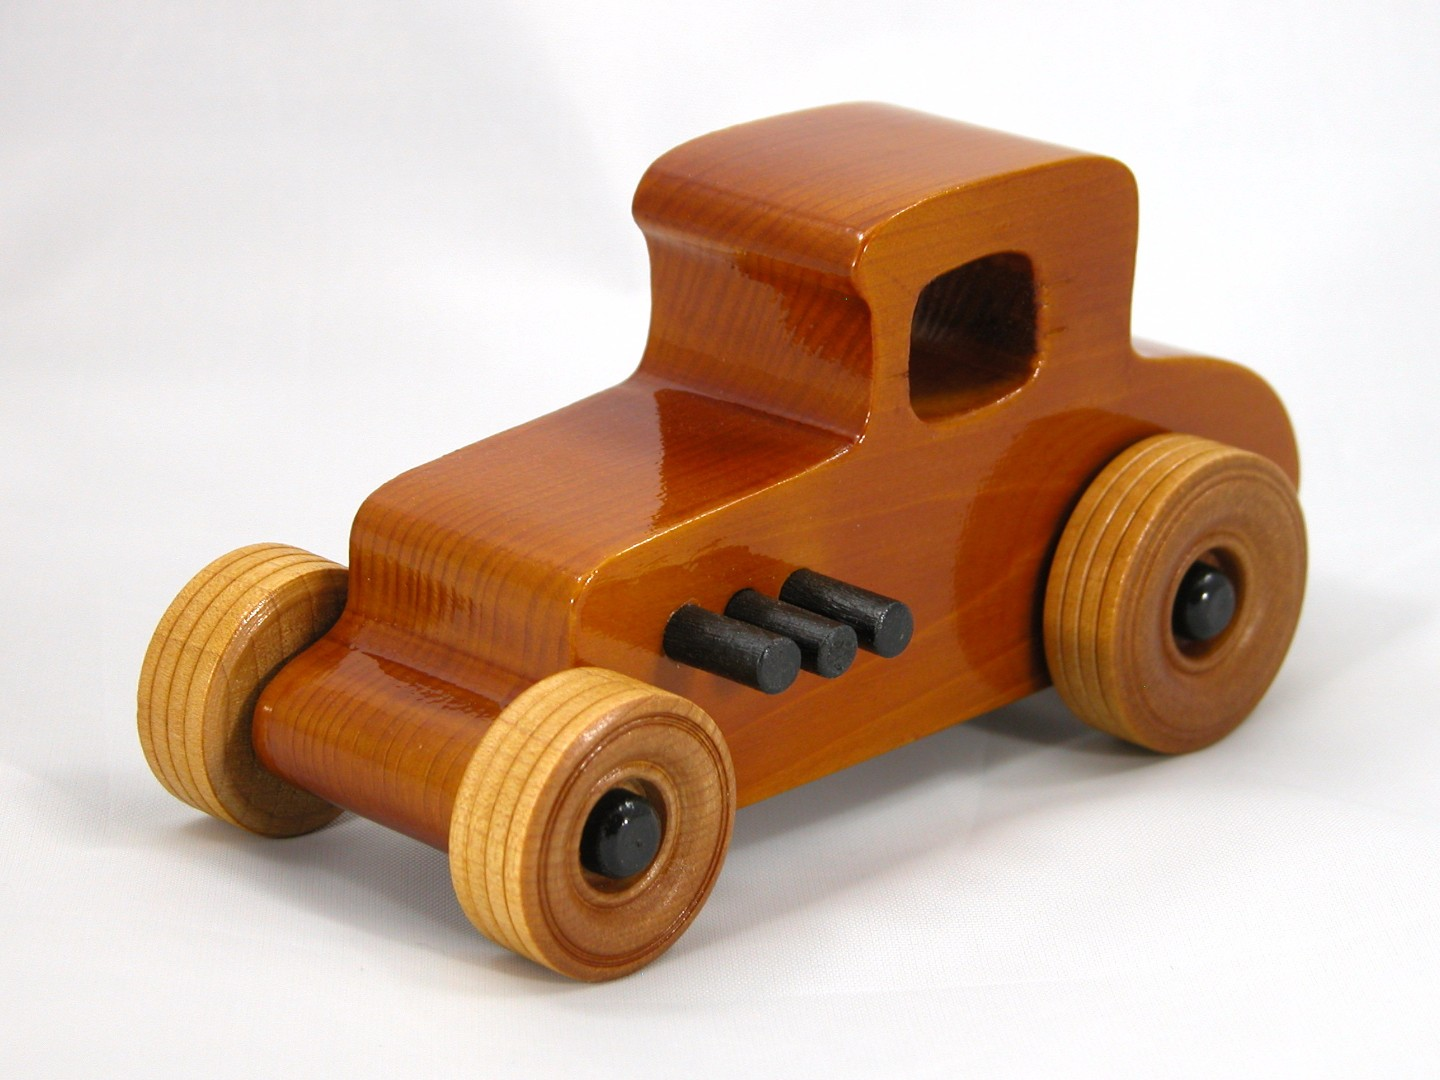 20171010-202504 Wooden Toy Car - Hot Rod Freaky Ford - 27 T Coupe - Pine - Amber Shellac - Black Hubs.jpg